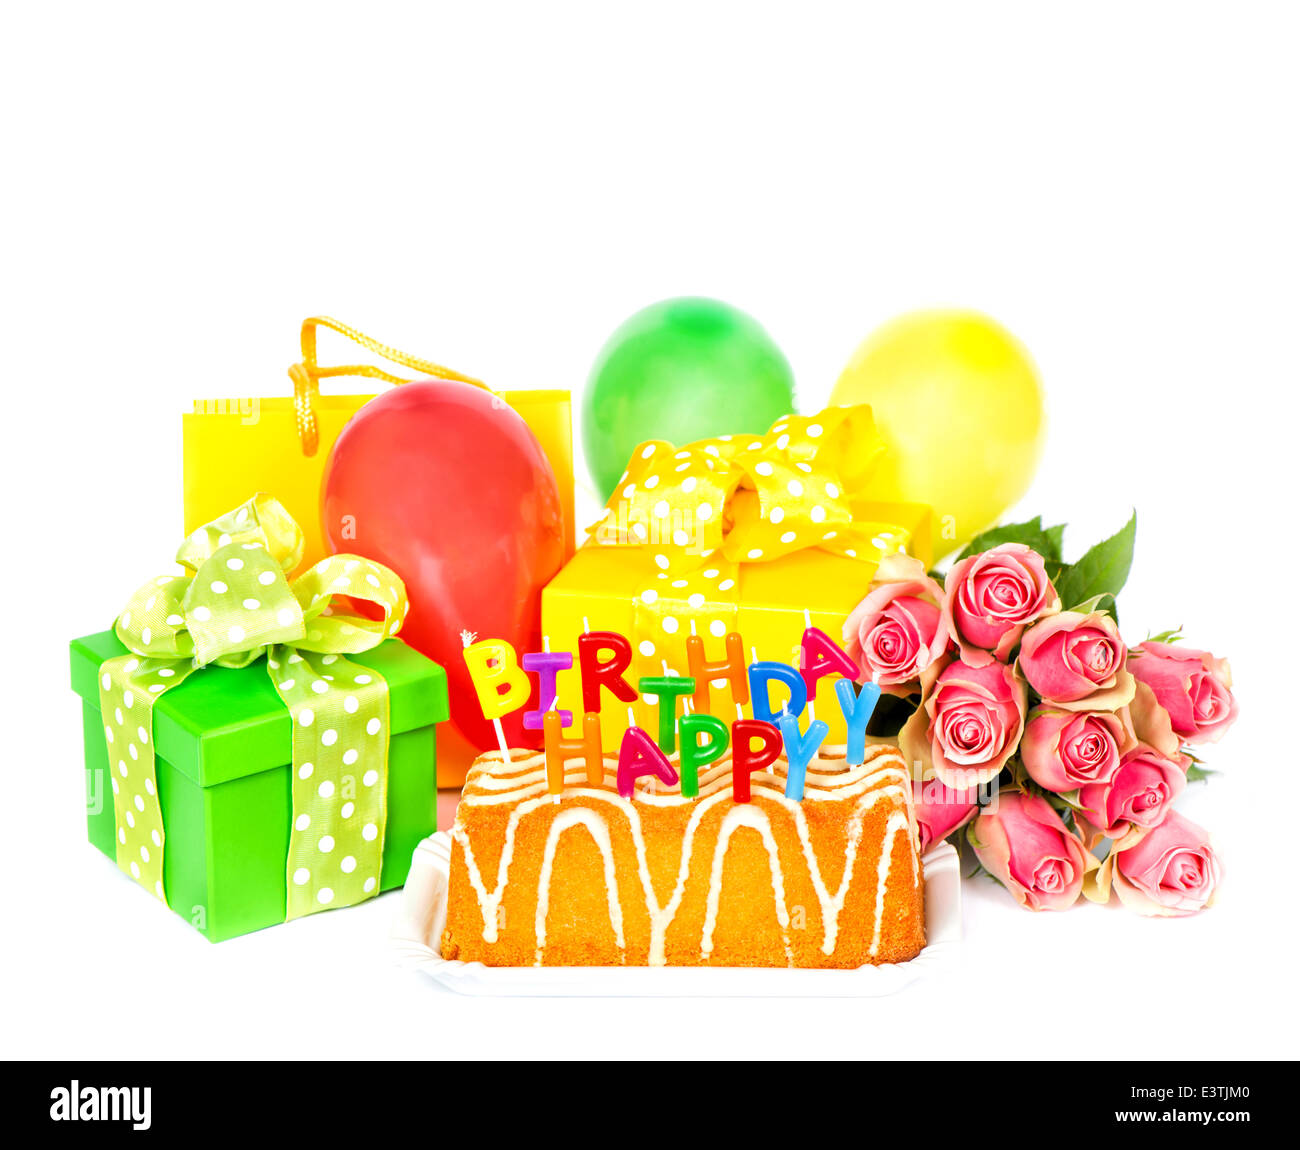 Birthday Party Decoration With Rose Flowers Cake Balloons Gifts And Candles Greetings